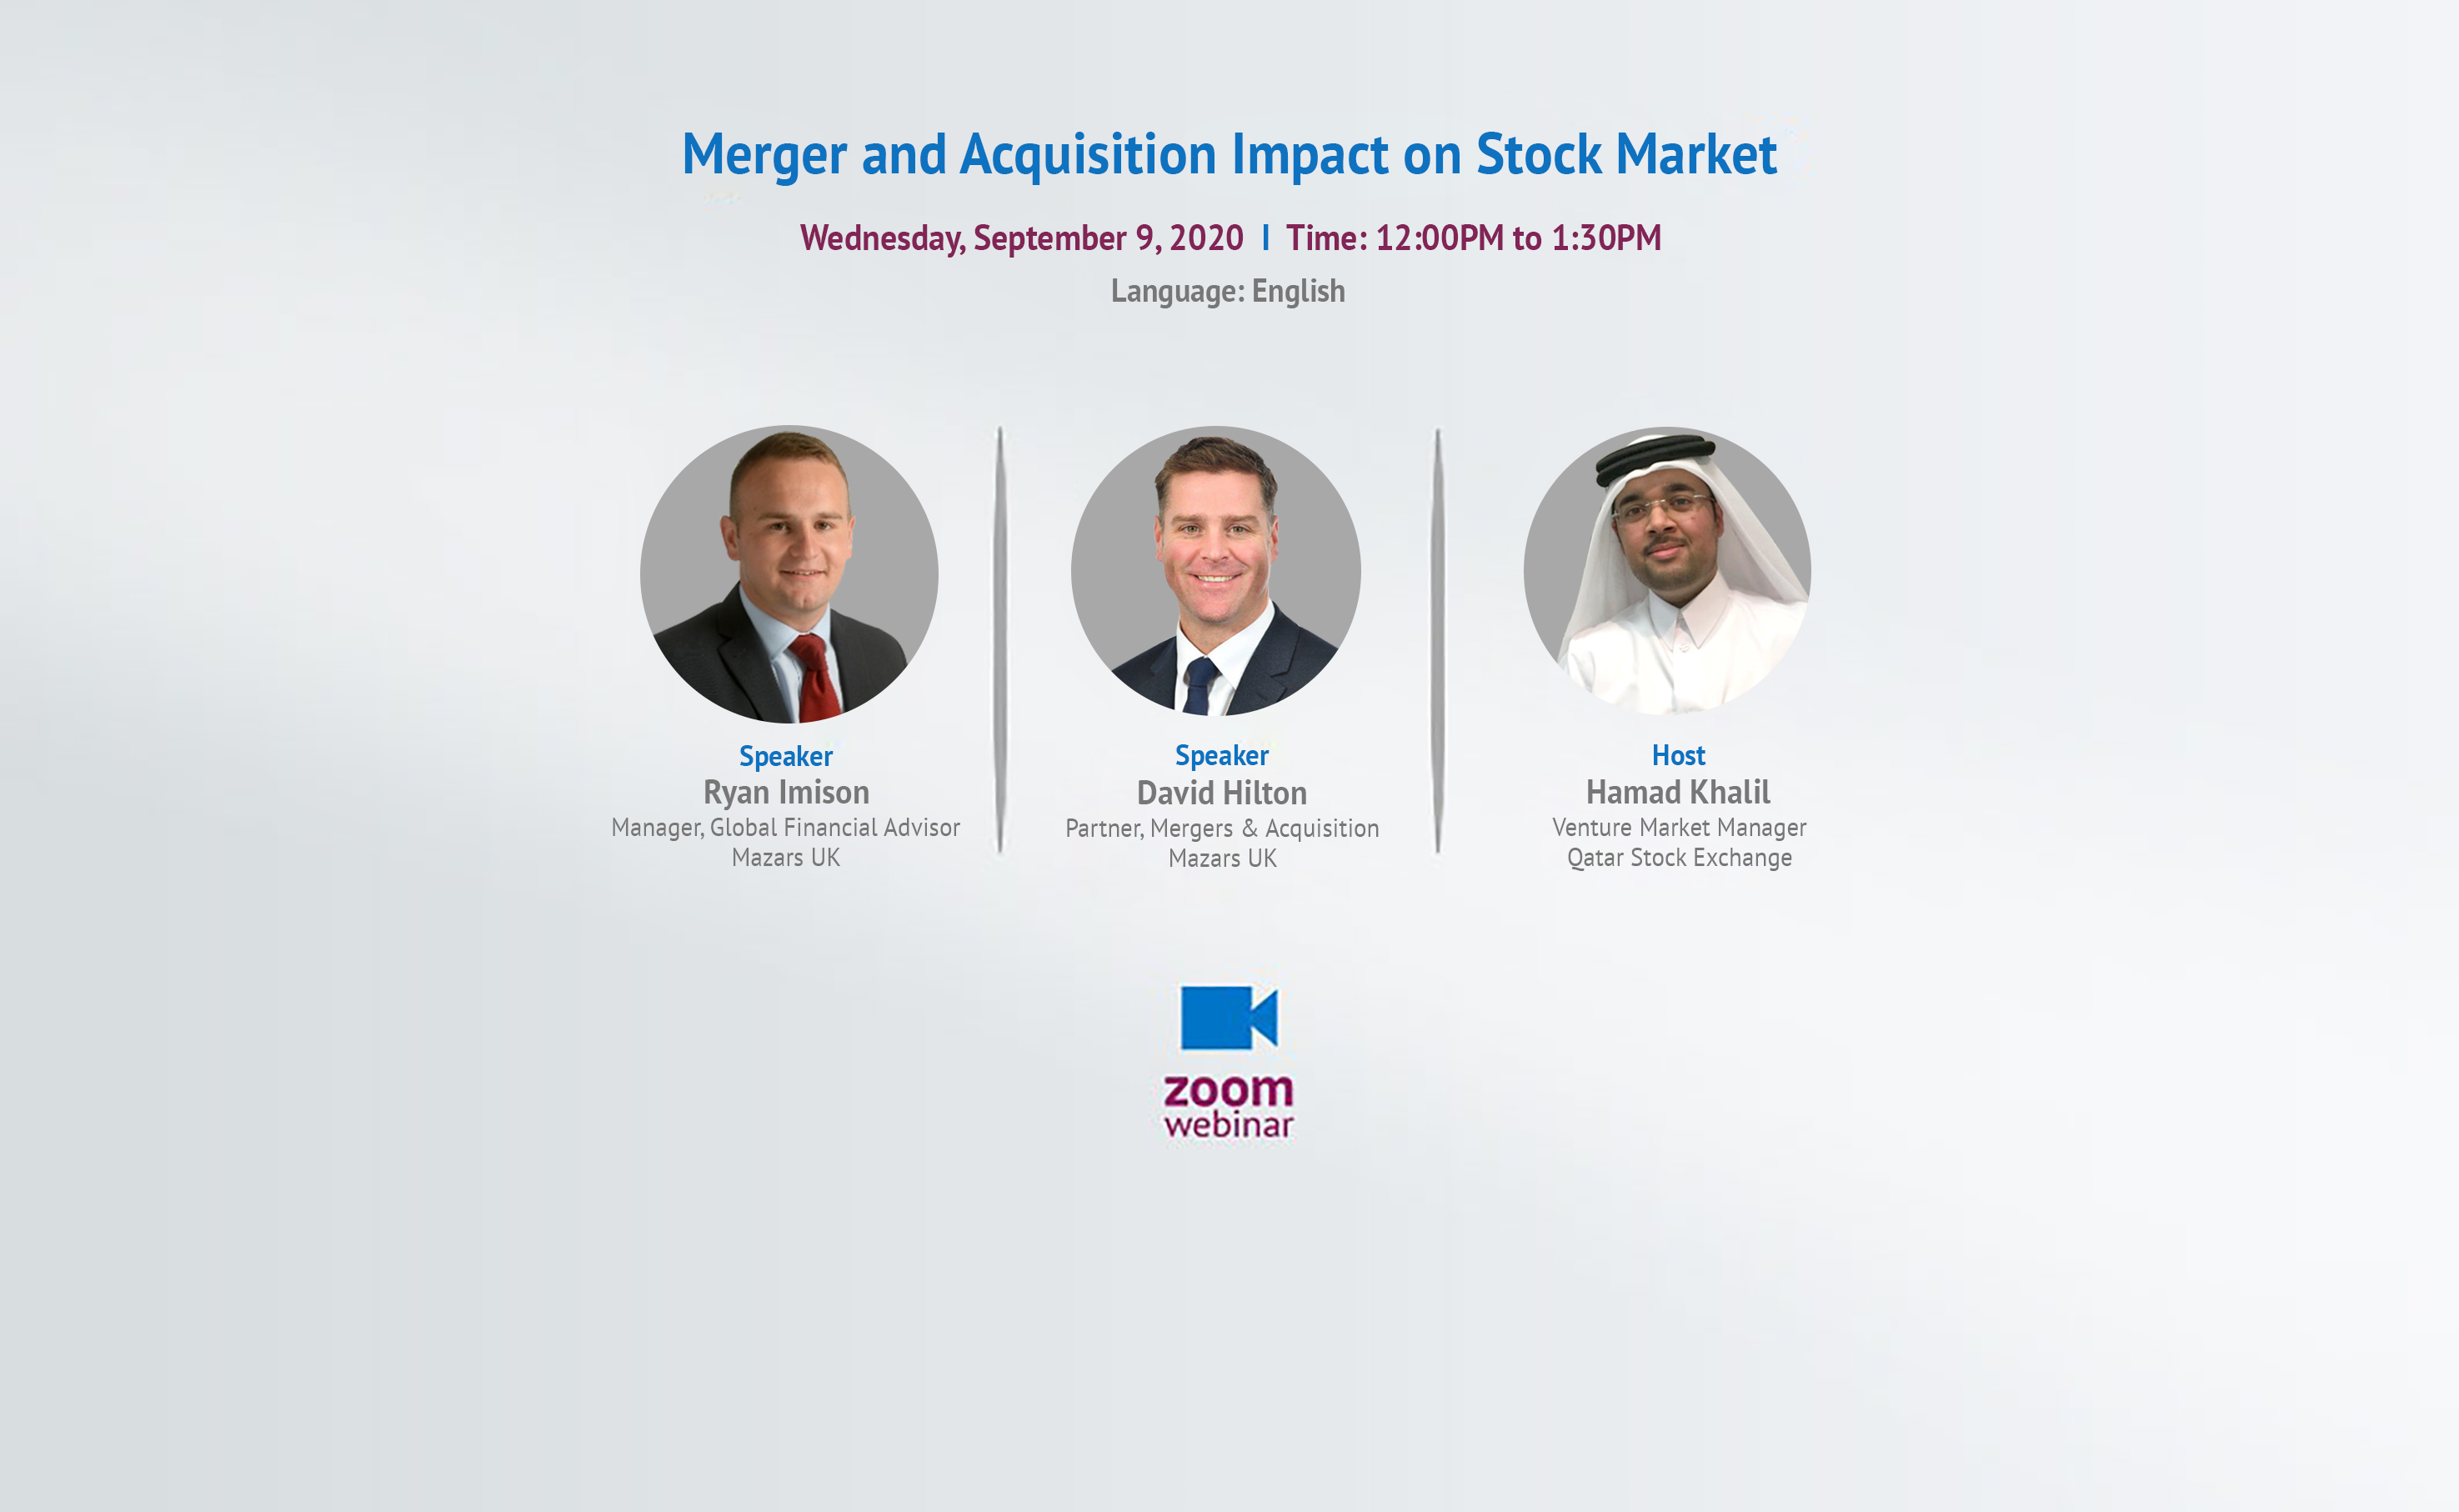 Speakers in FMerger and Acquisition impact on Stock Market Webinar